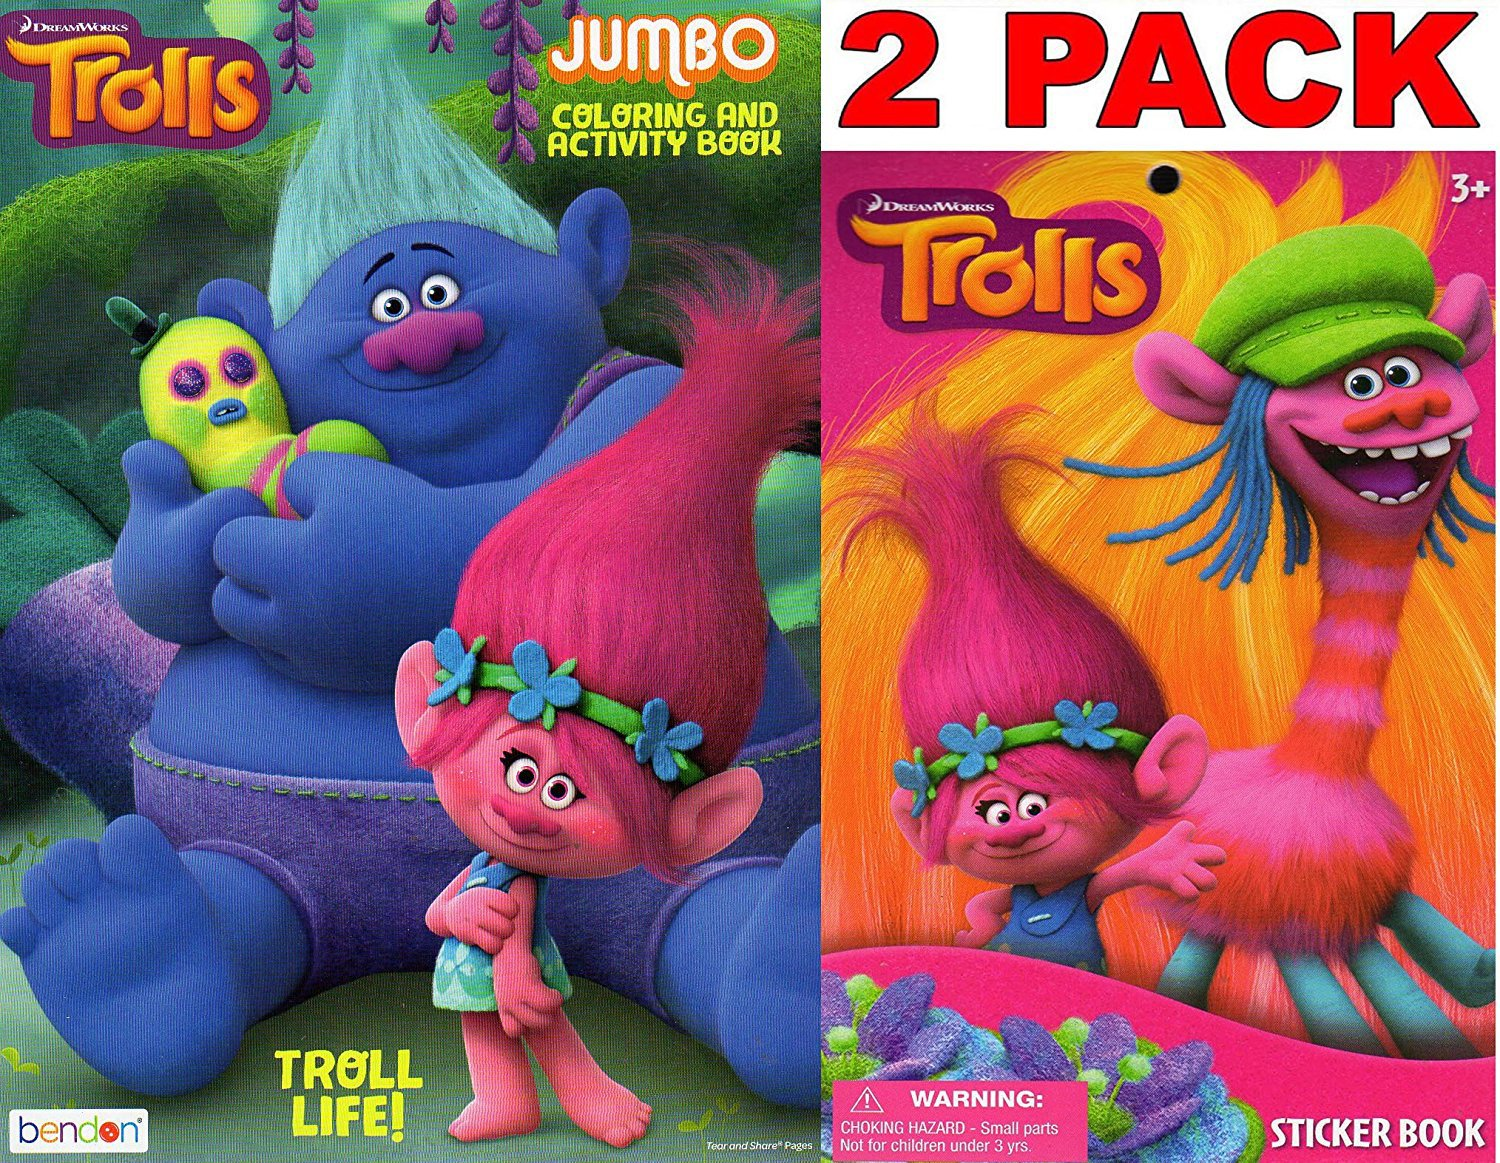 Dreamworks Trolls - Trolls Life - Jumbo Coloring and Activity Book + Trolls Sticker Book (2 Pack)